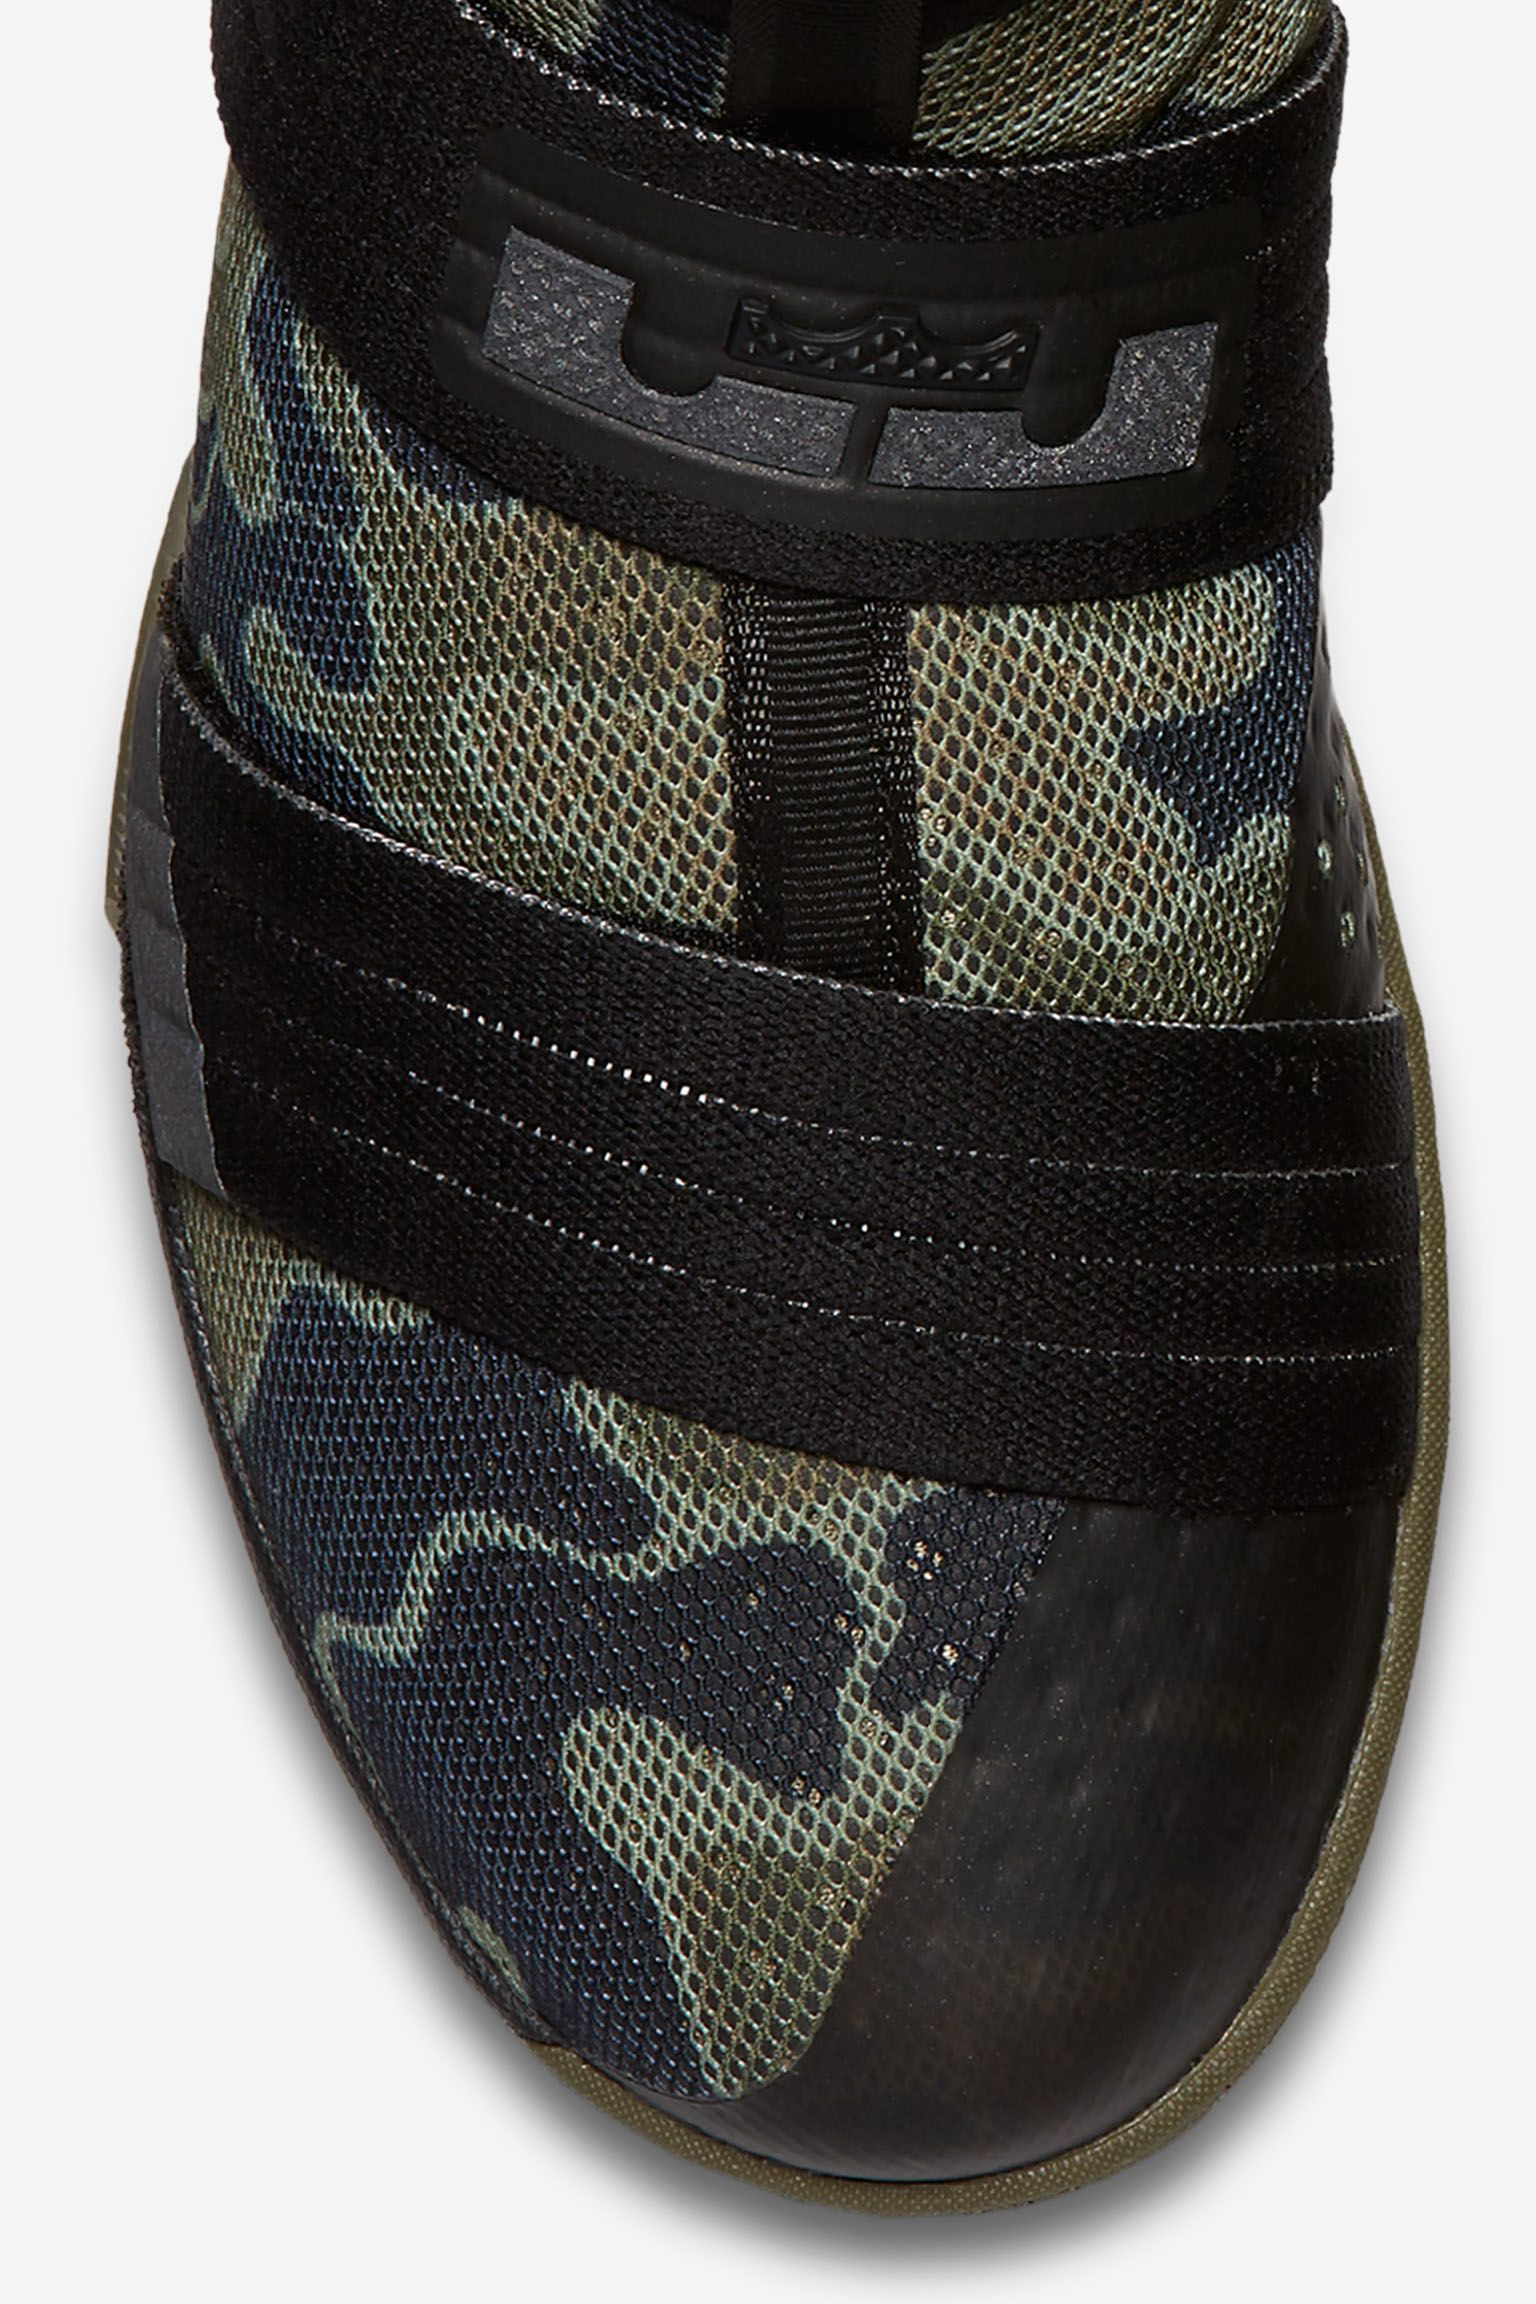 Nike Zoom LeBron Soldier 10 'Camo' Release Date